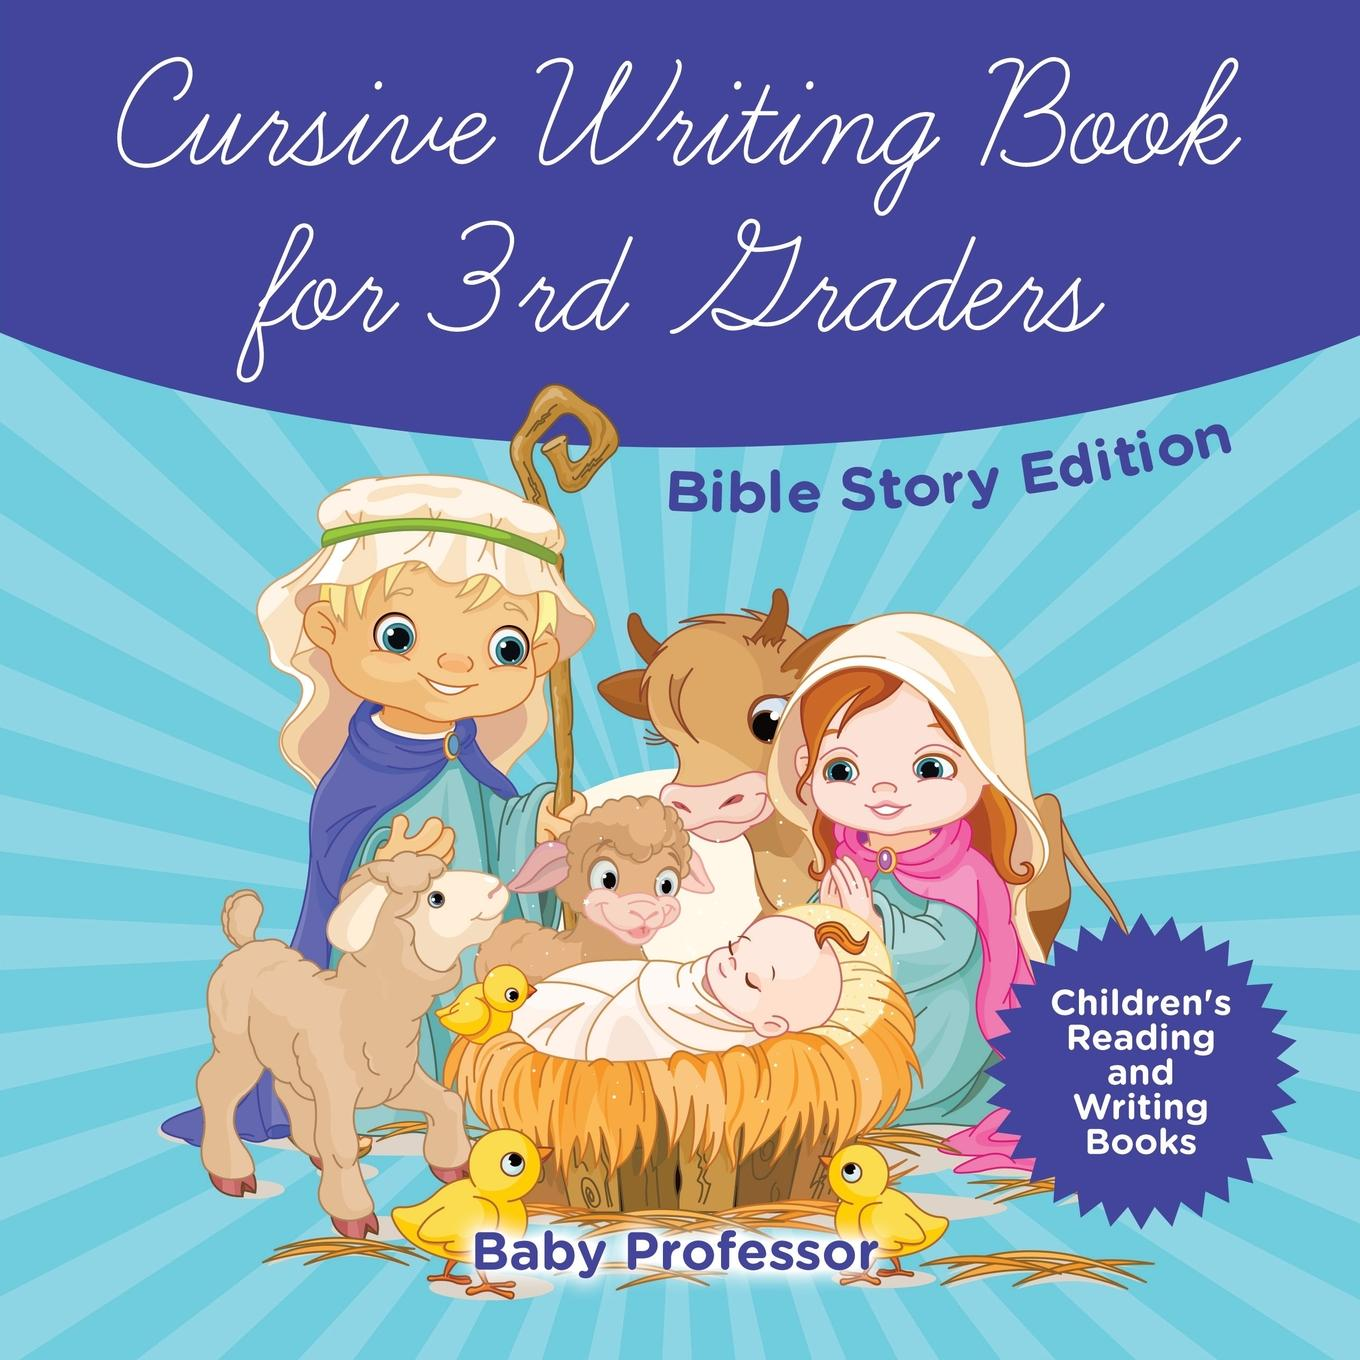 Cursive Writing Book for 3rd Graders - Bible Story Edition Children's Reading and Writing Books